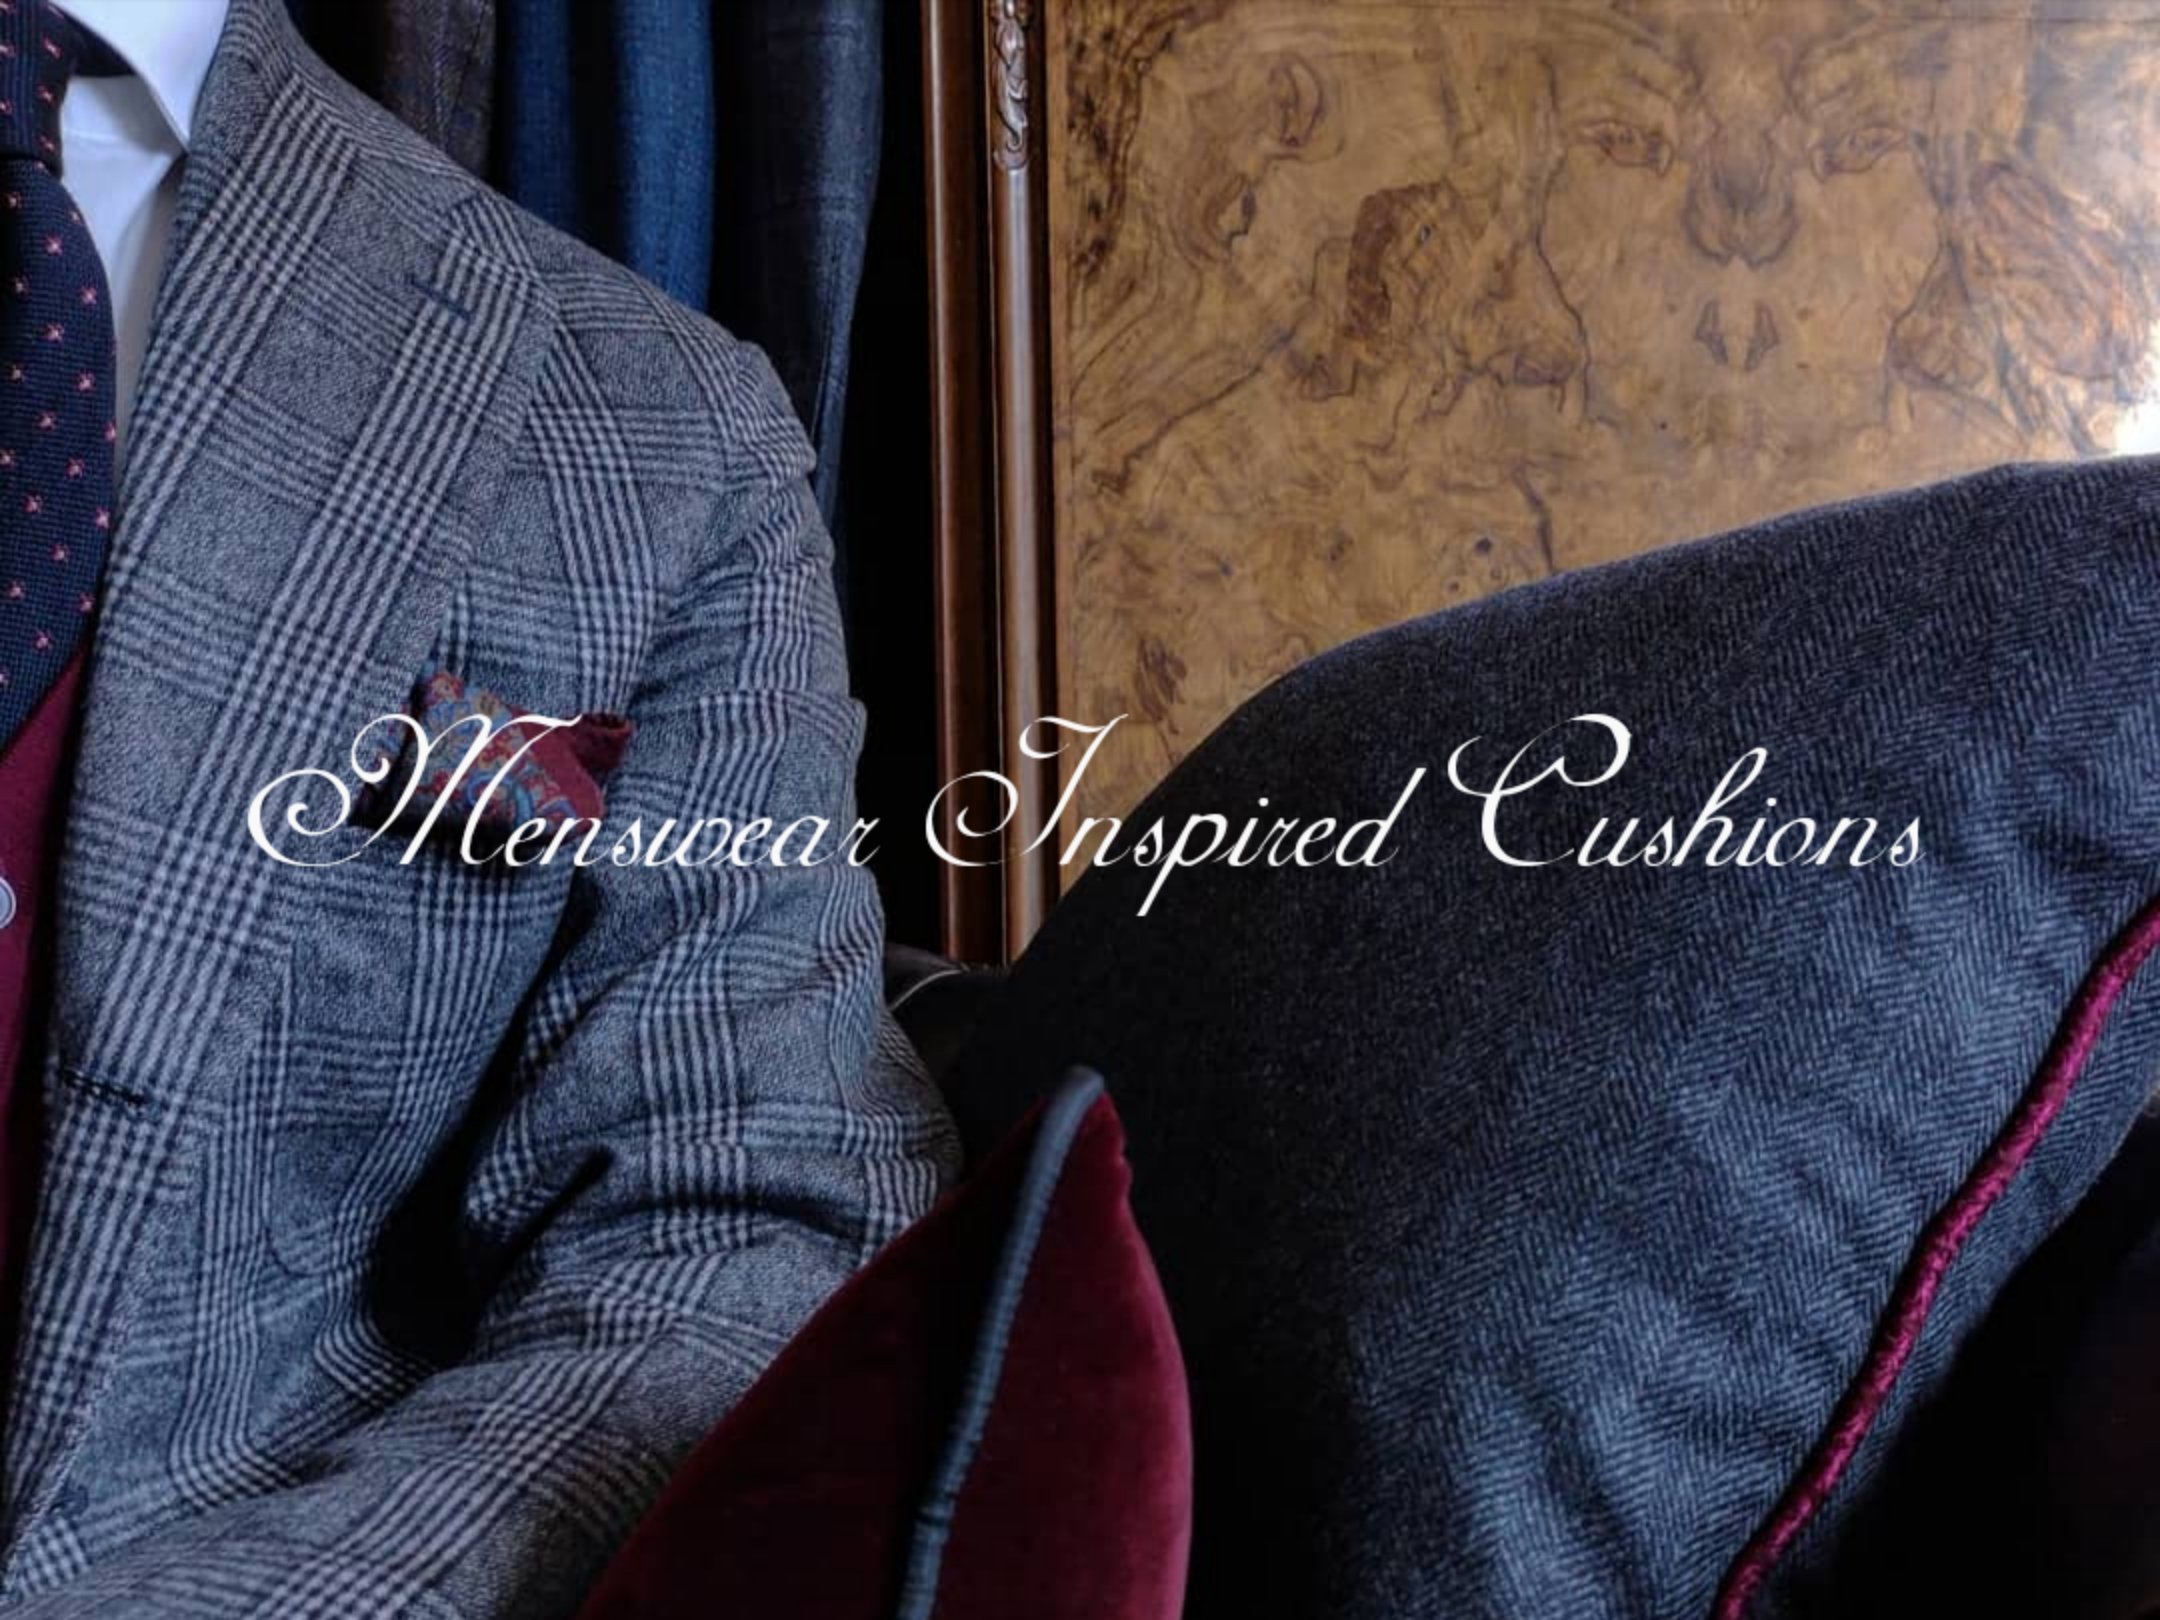 Sartorial Tailored Masculine Menswear Pillows